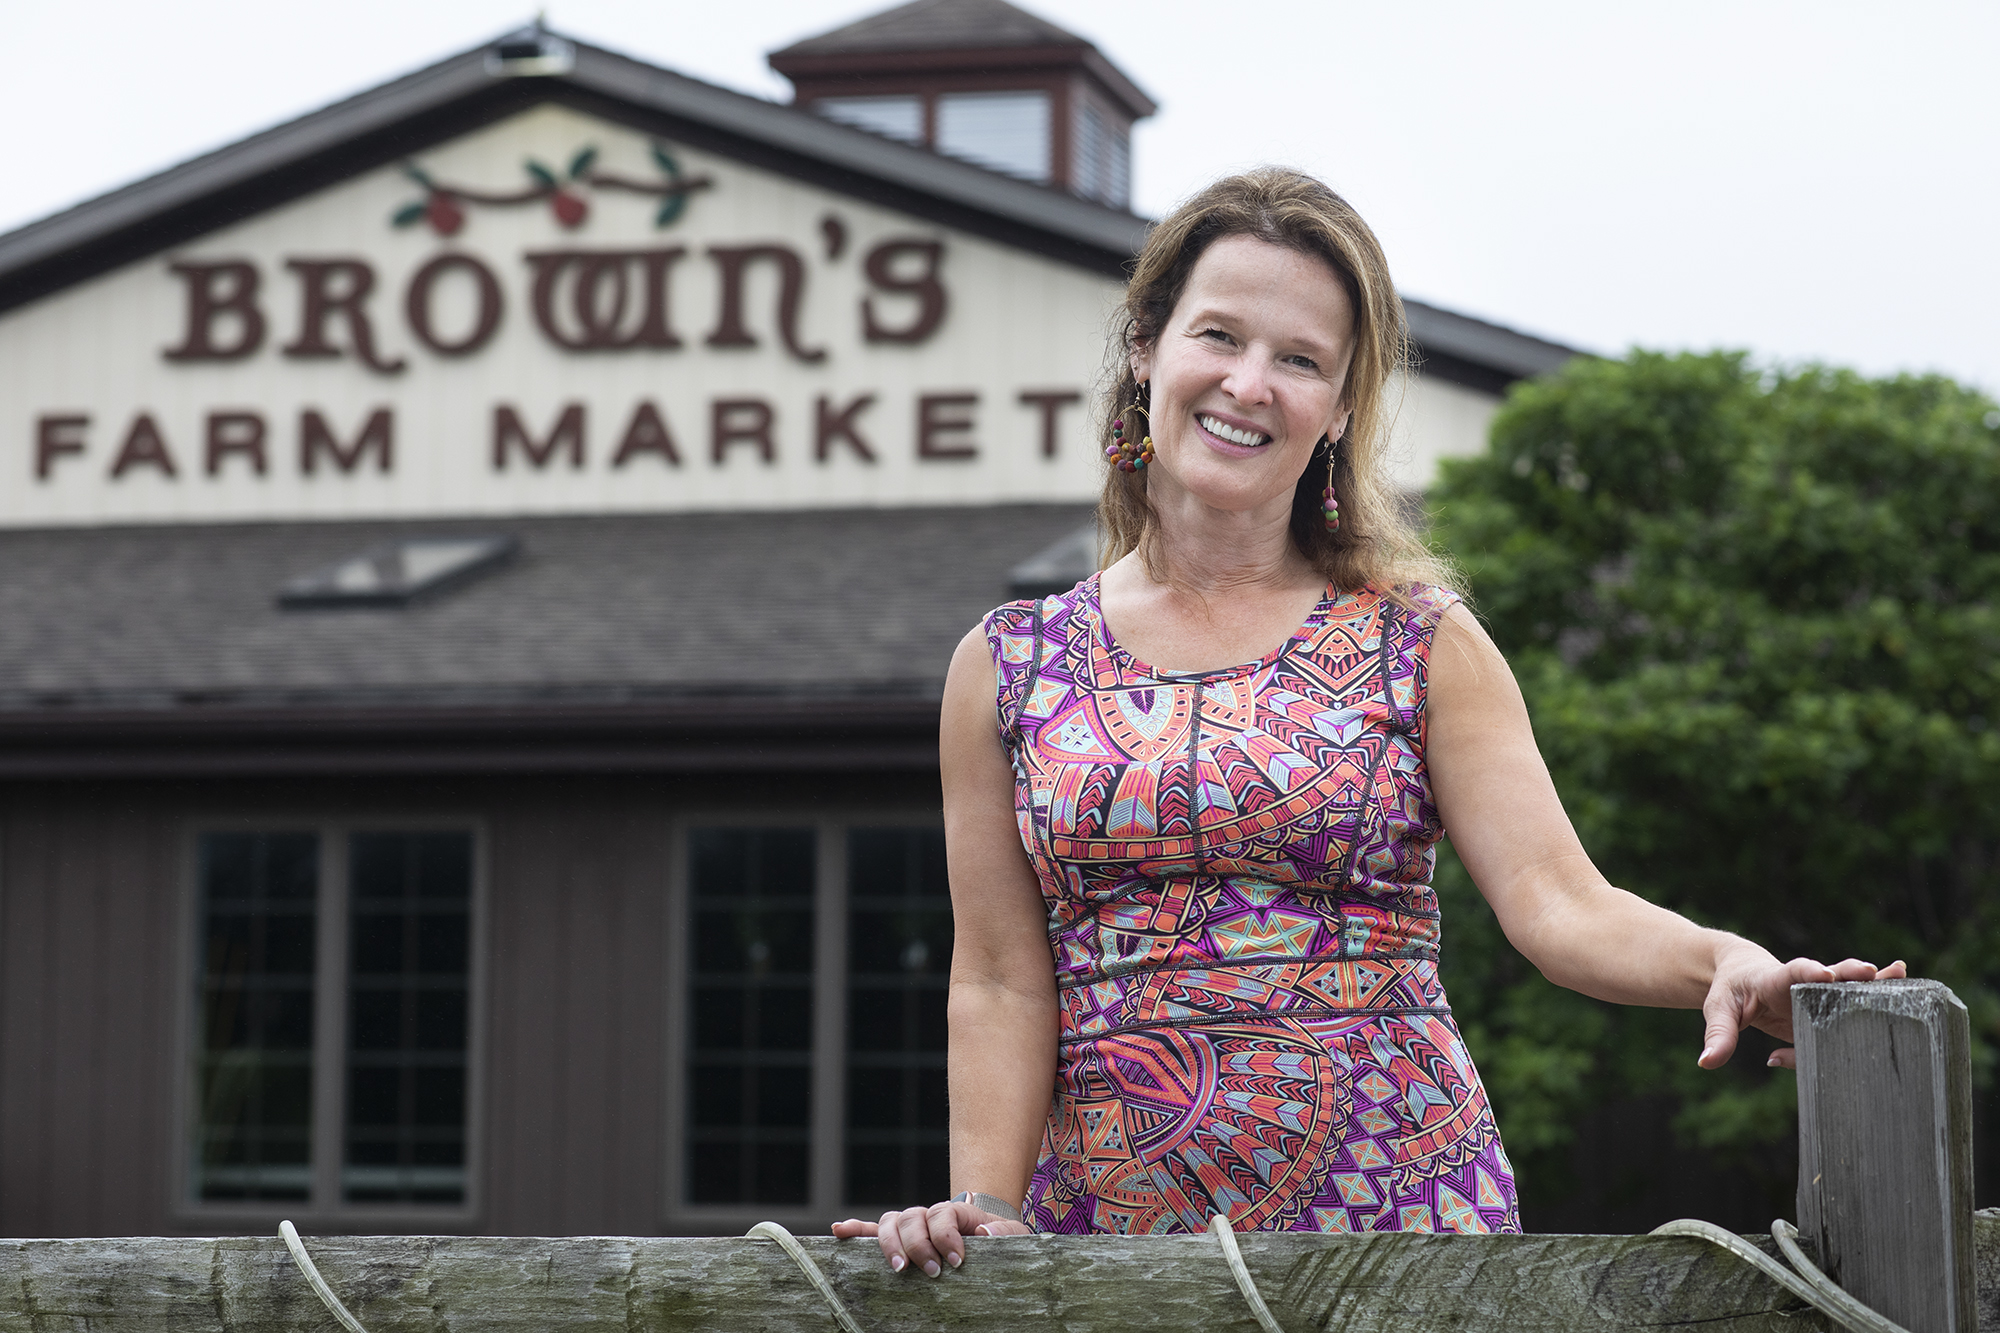 woman standing in front of farm market